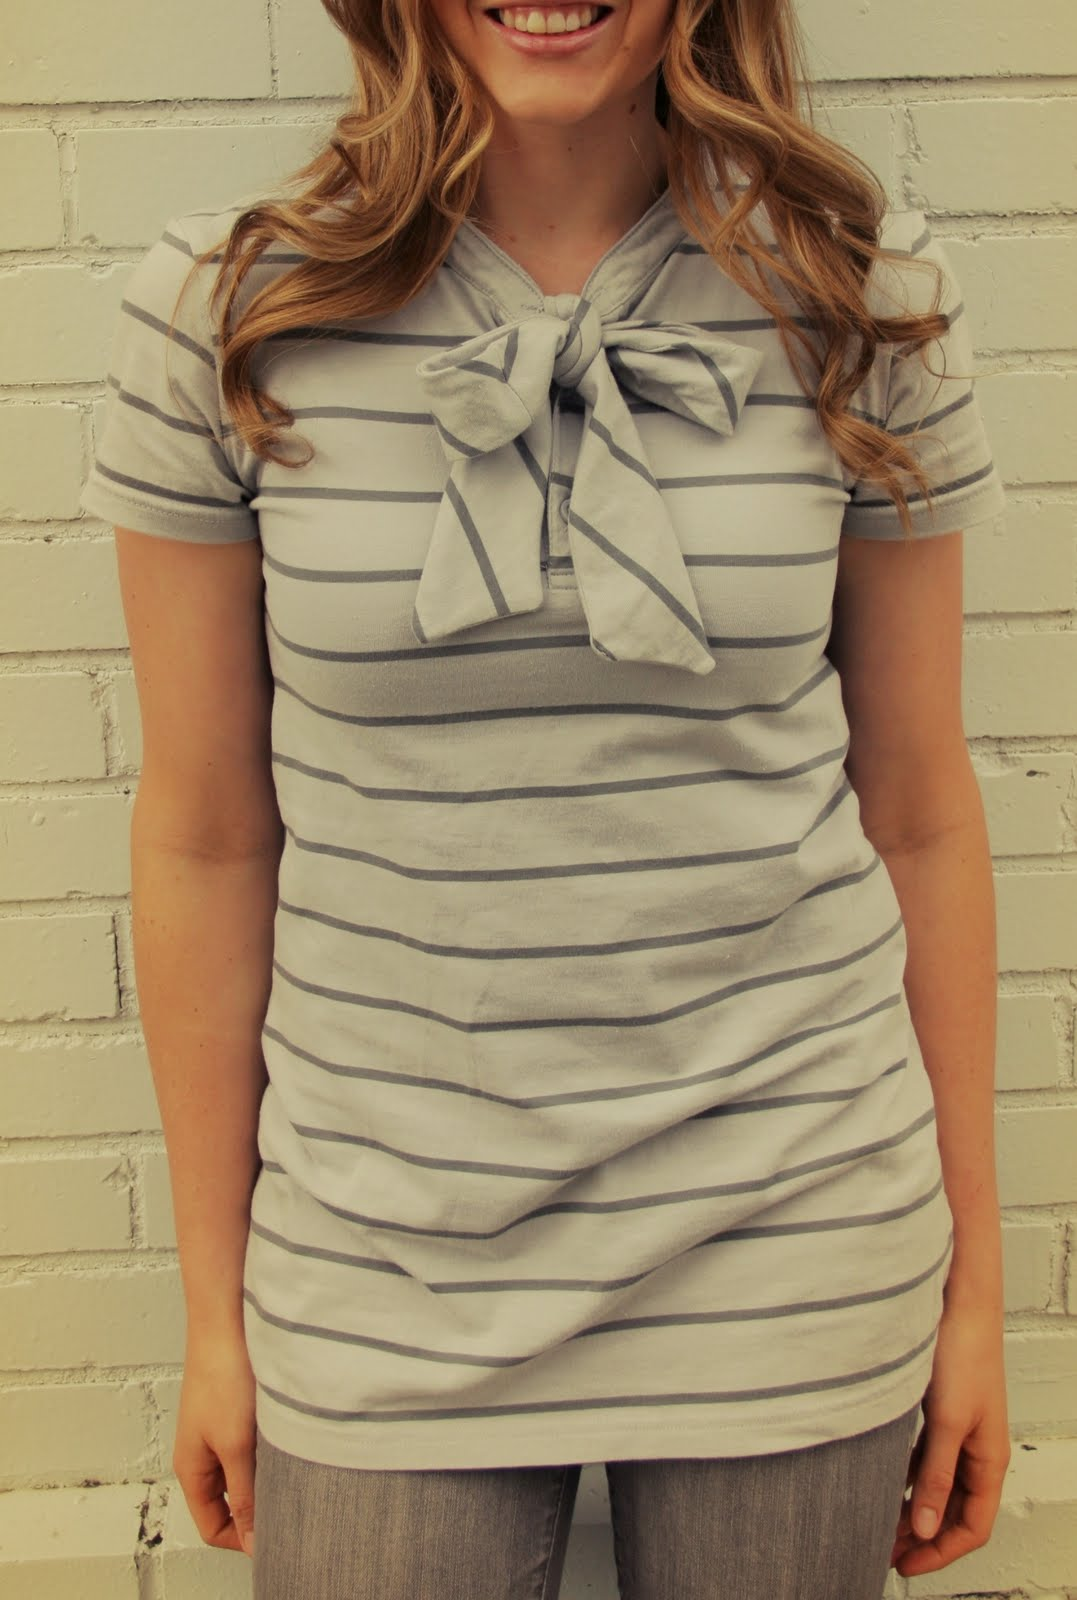 Men's Polo To Woman's Bow Shirt